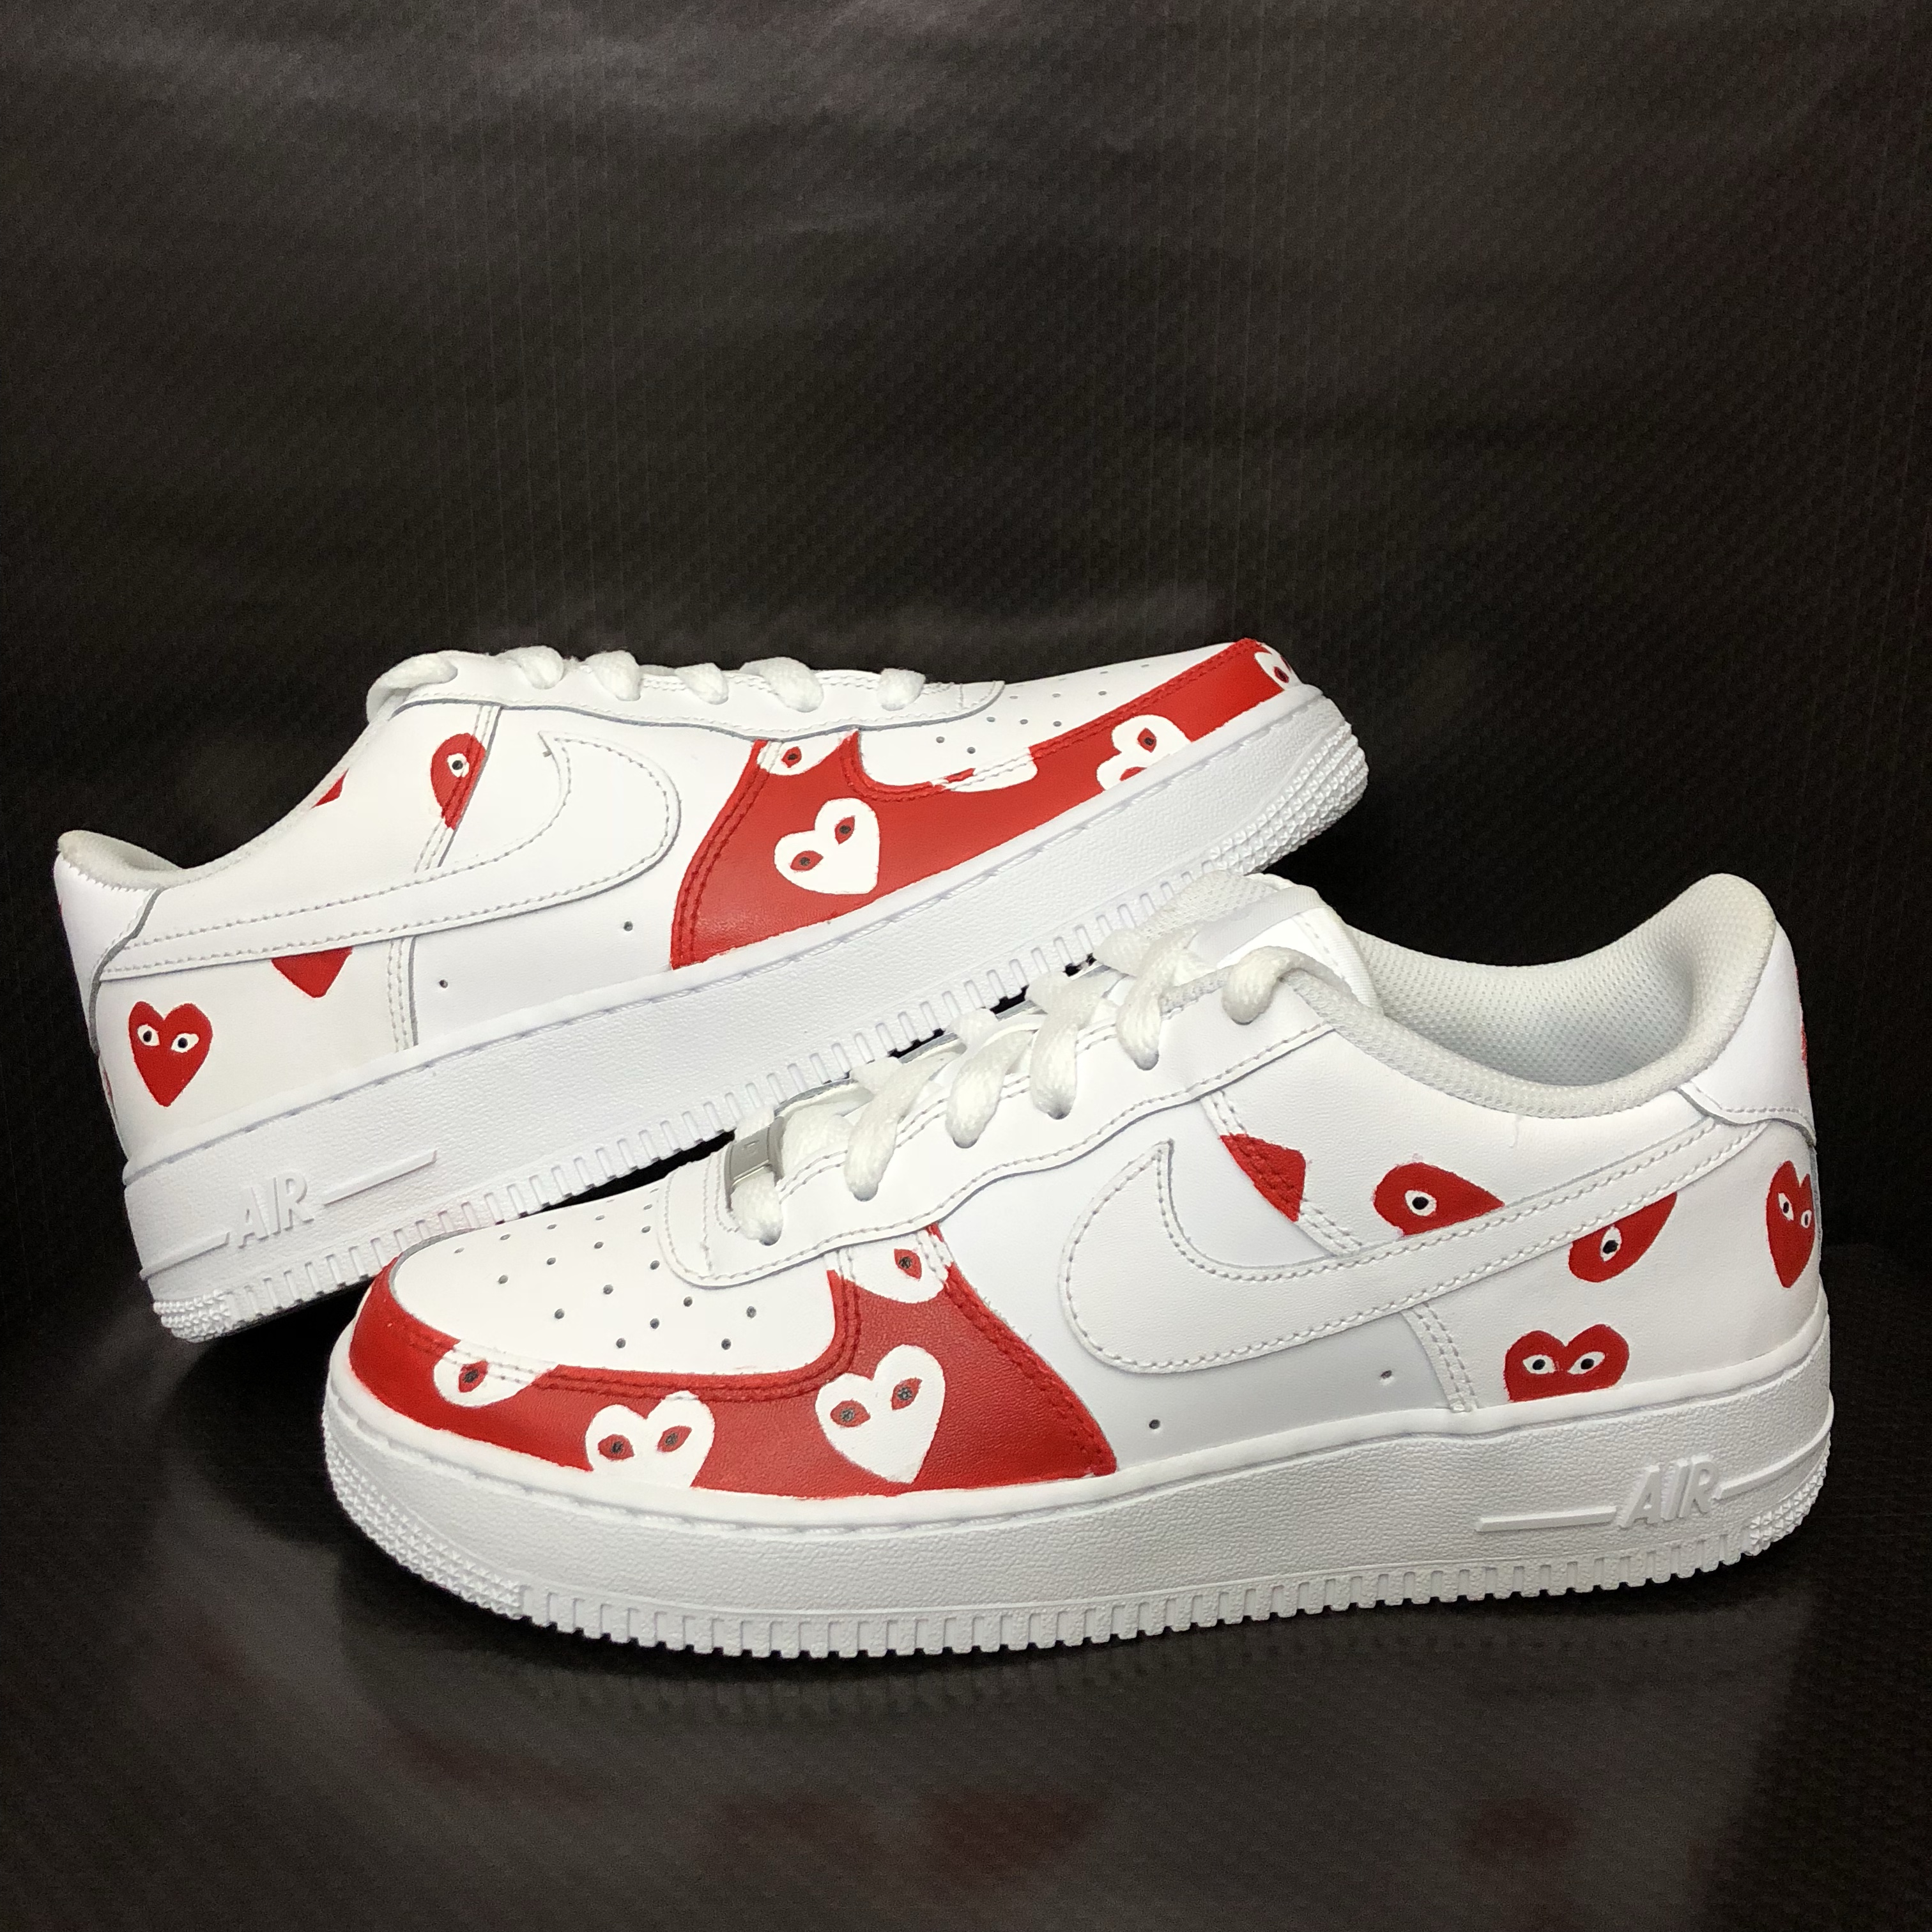 Custom Nike Air Force 1 with red CDG Comme des Depop